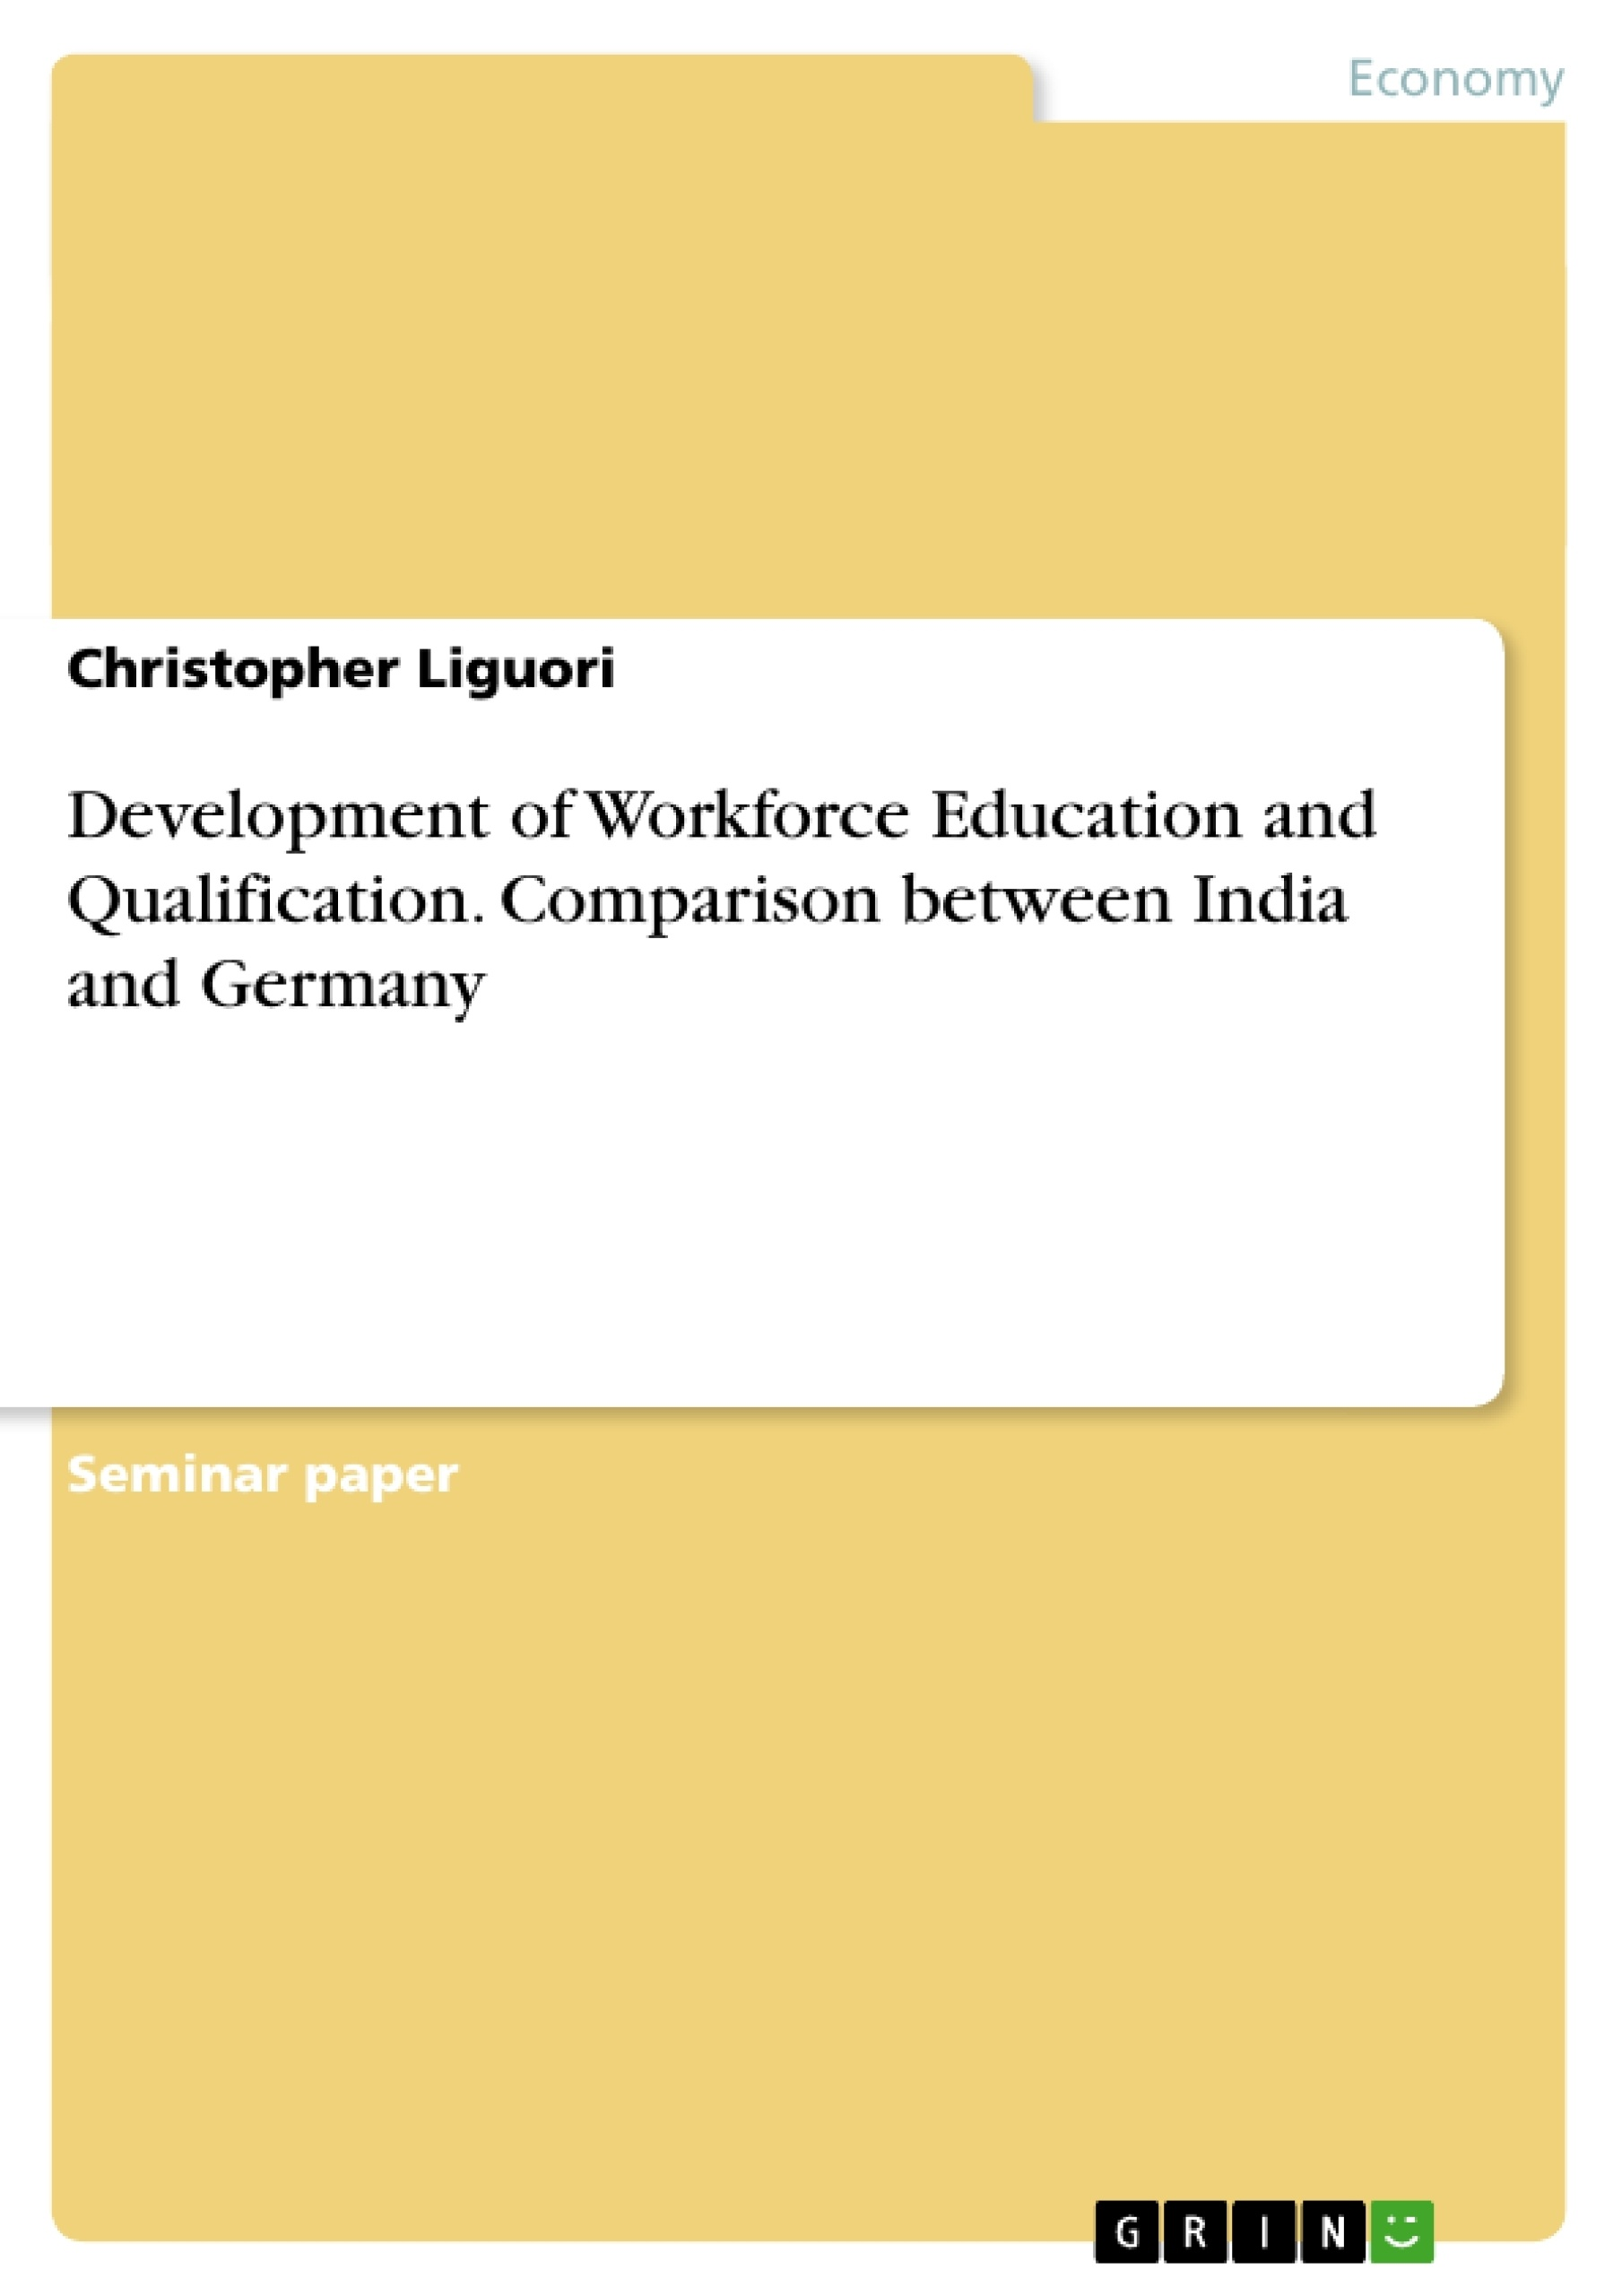 Title: Development of Workforce Education and Qualification. Comparison between India and Germany